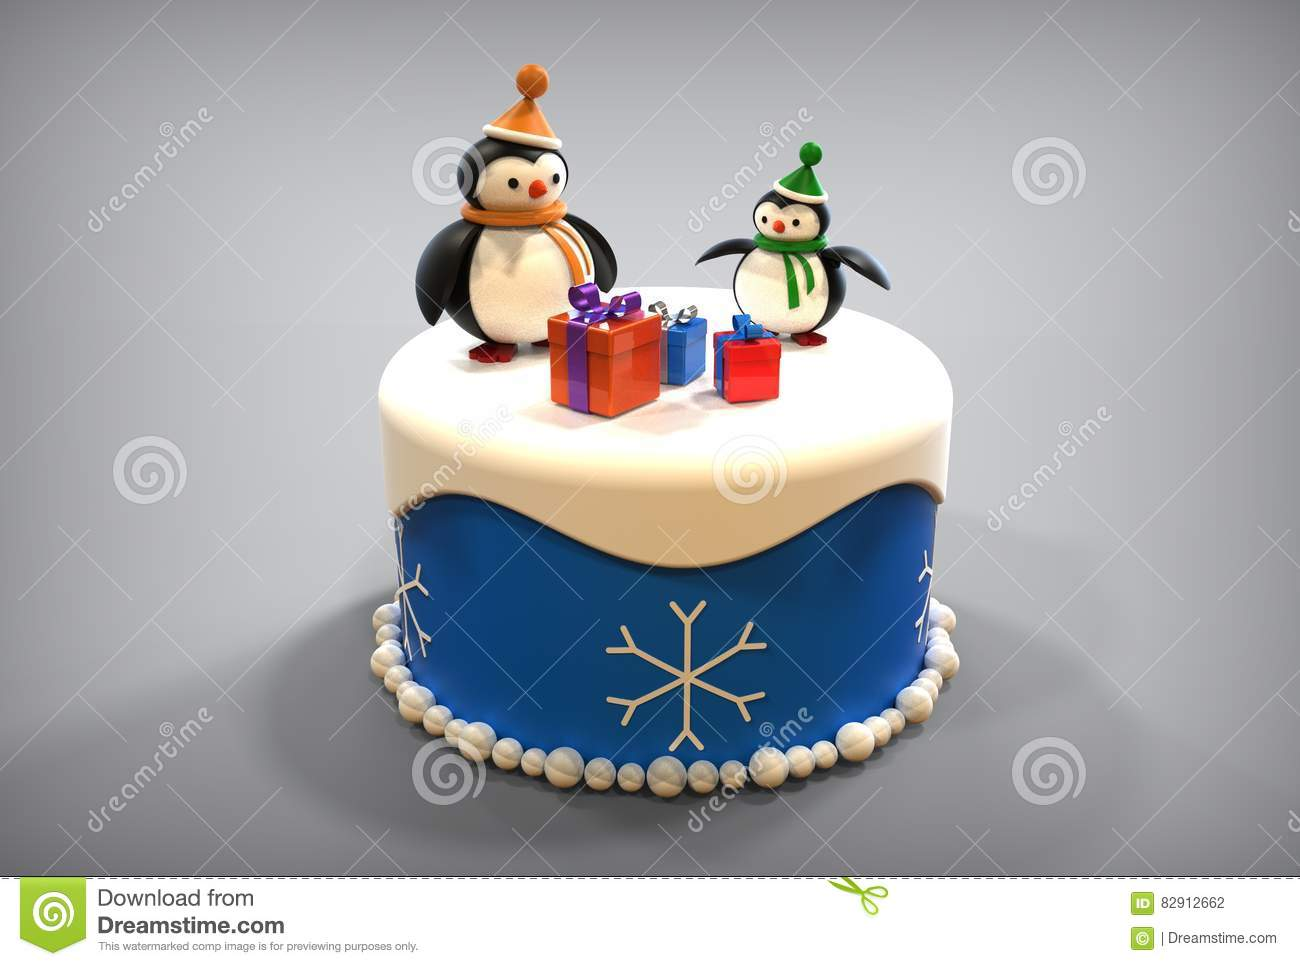 3d happy new year toy penguins on cake